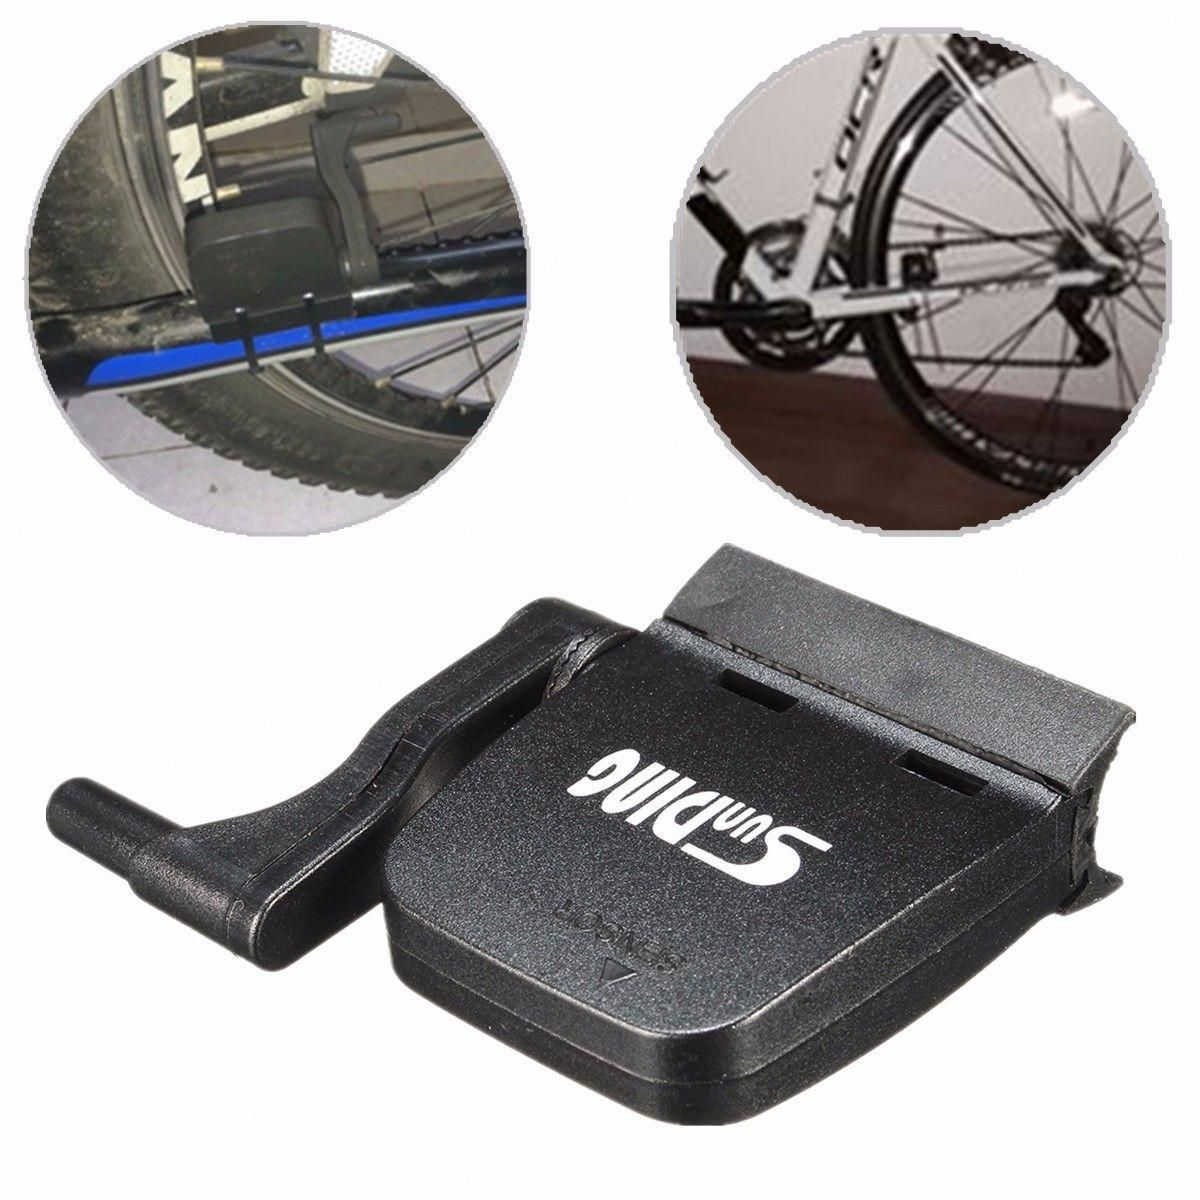 Types Of Bikes in 2020 Cool bike accessories, Tandem